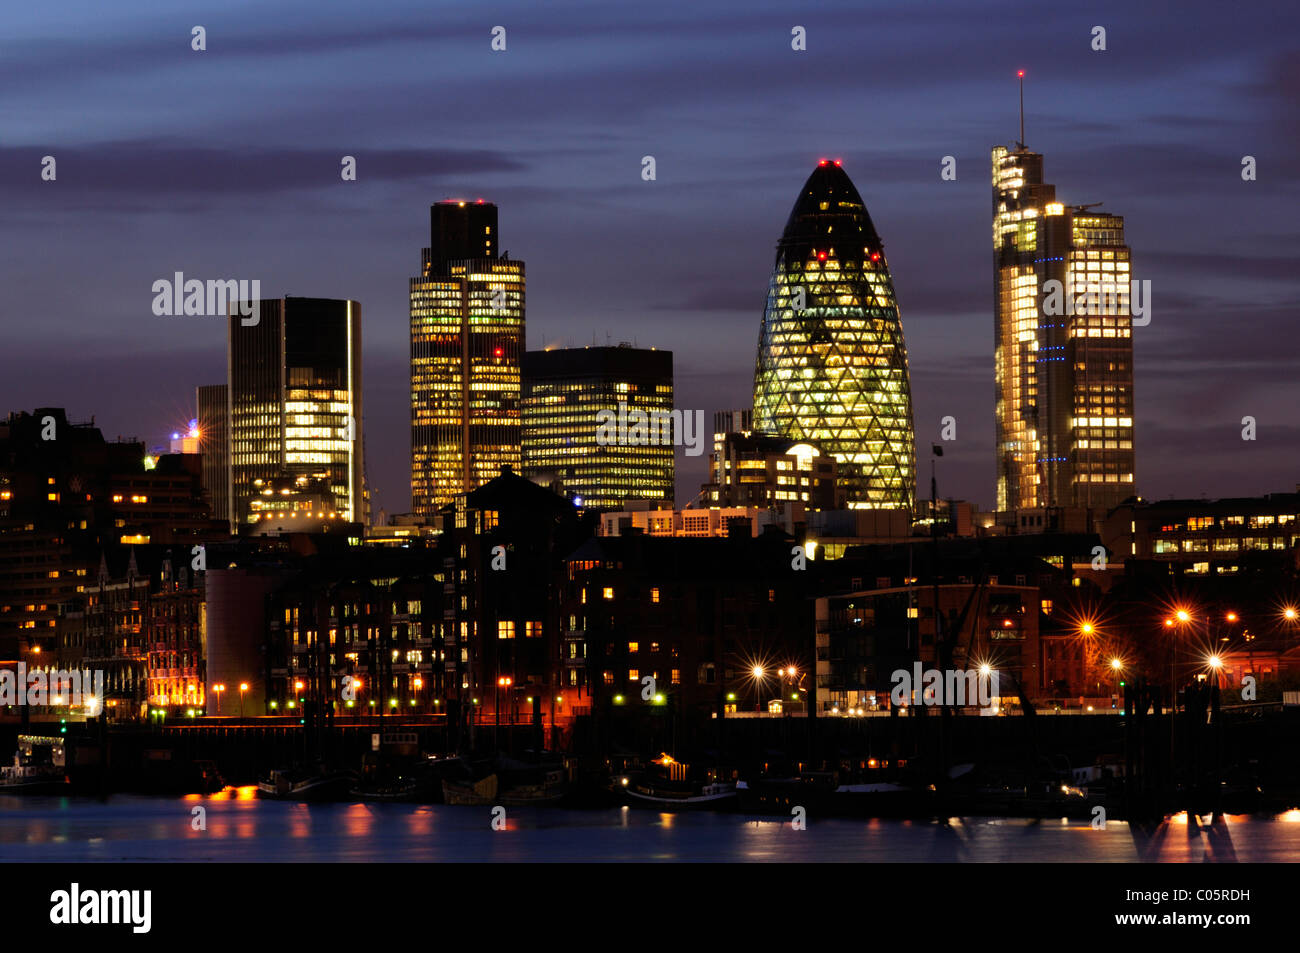 City of London Skyline at Night including Tower 42, 30 St Mary Axe and Heron Tower seen from Bermondsey, London, - Stock Image